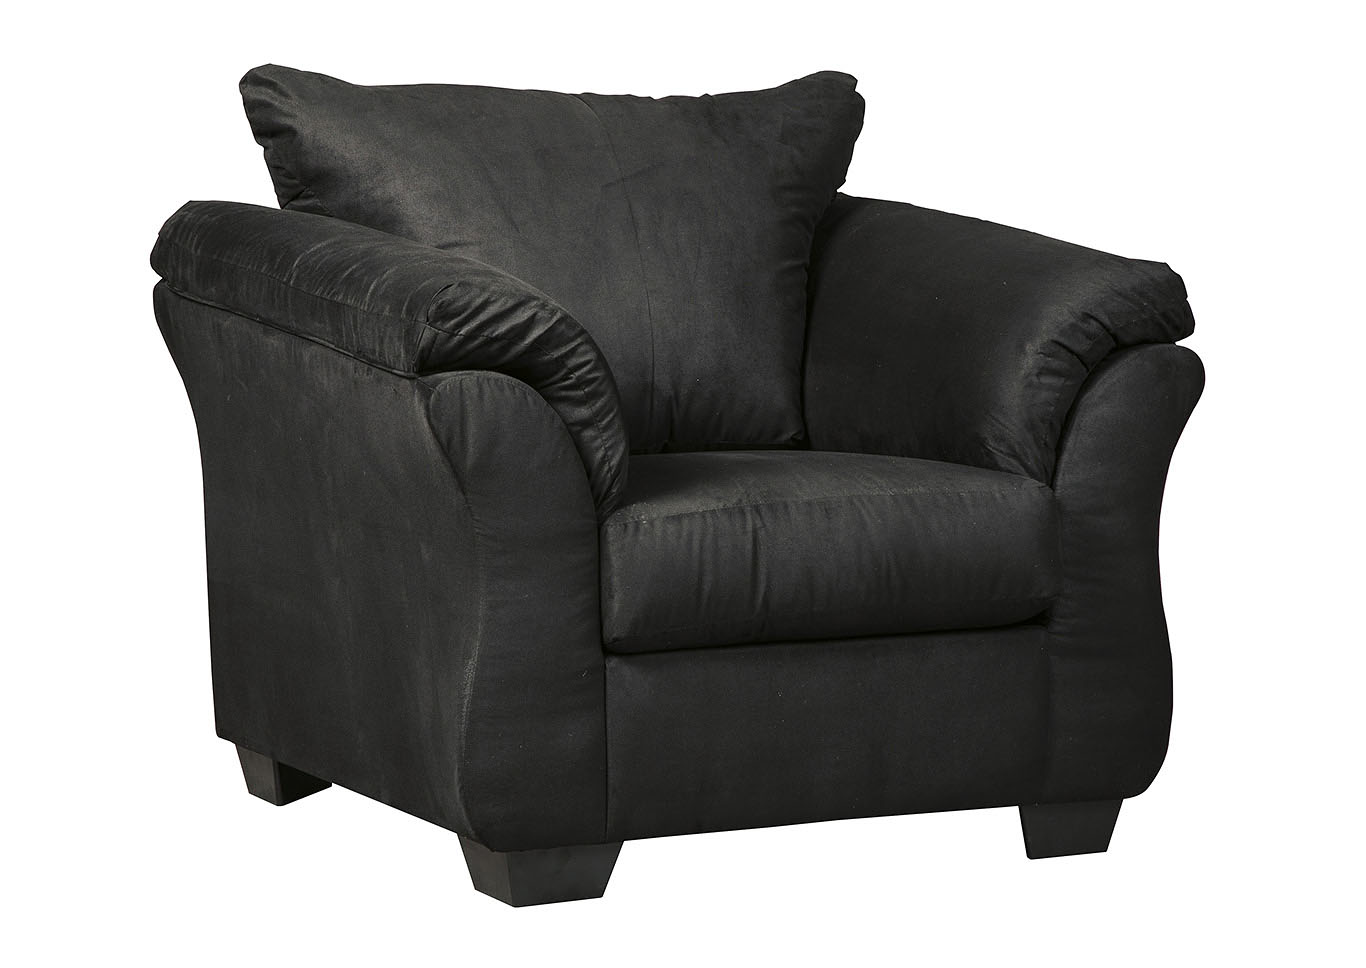 Darcy Black Chair,Signature Design By Ashley